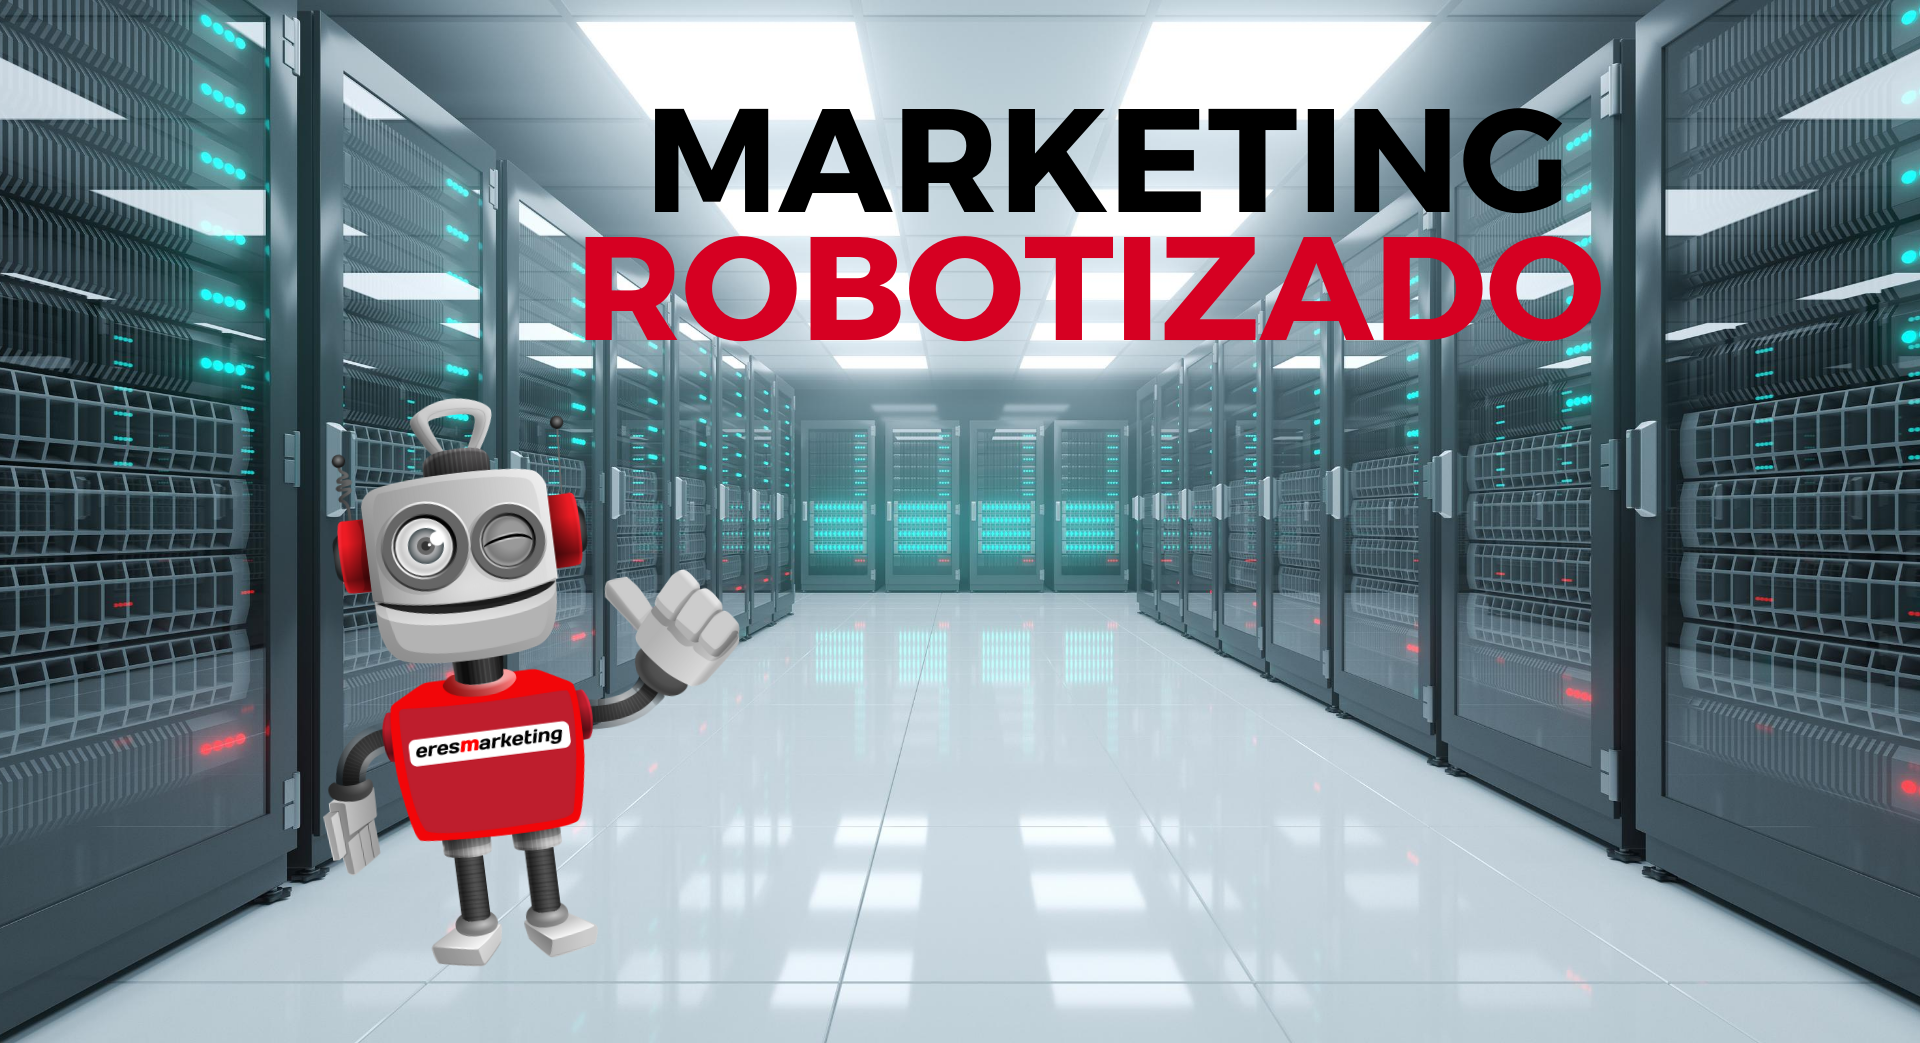 Marketing Robotizado